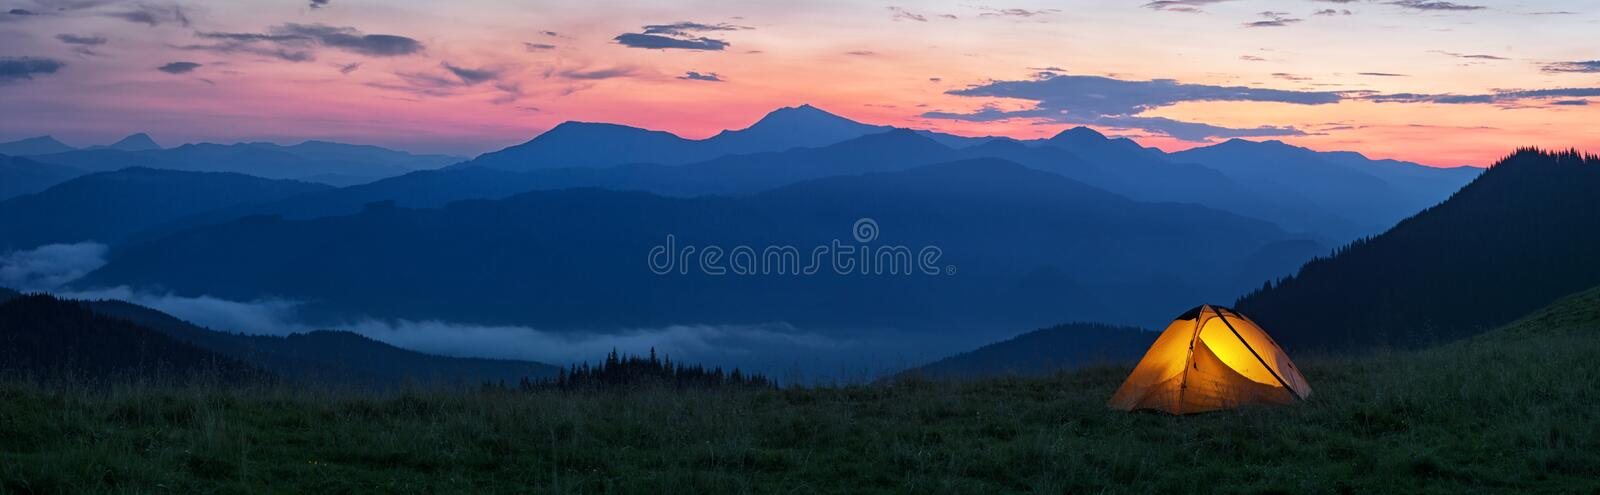 Glowing orange tent in the mountains under dramatic evening sky stock photography